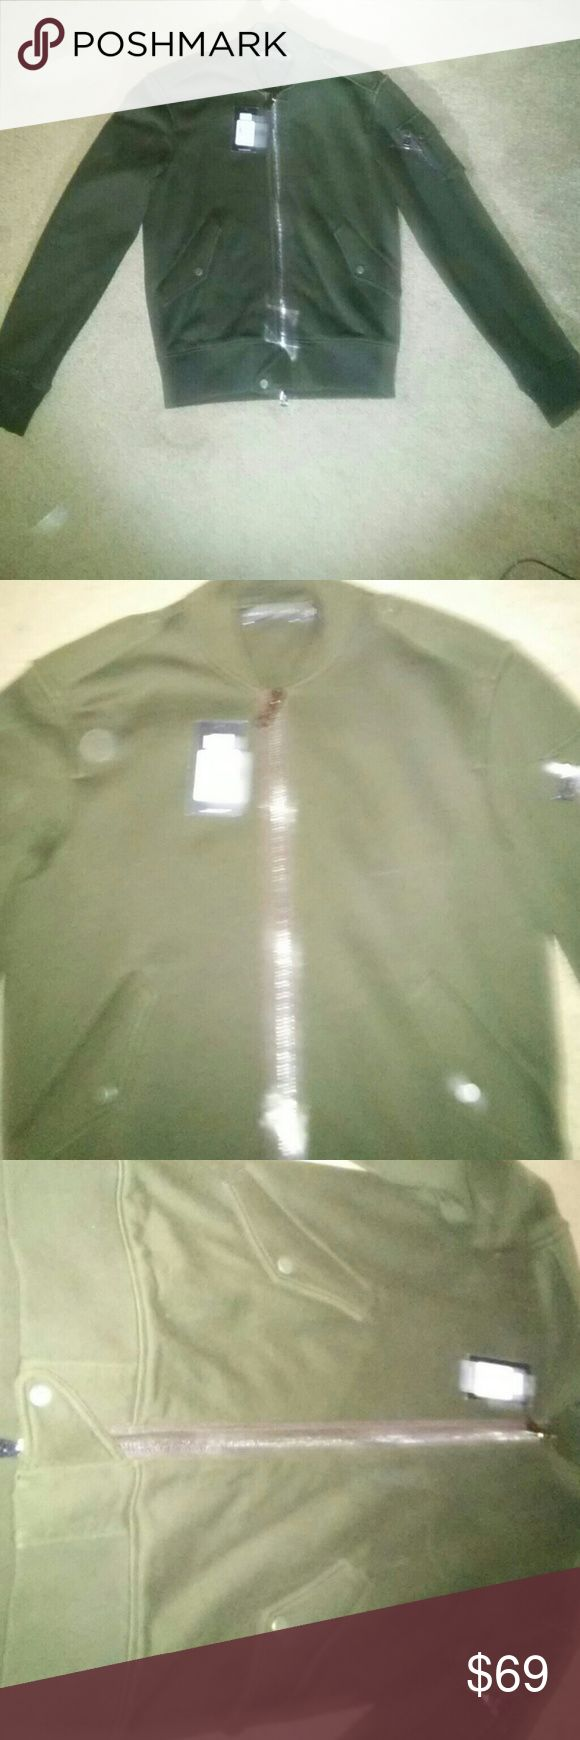 Ralph Lauren Zip Up Jacket Size S This zip up dark green jacket is from the top of the line Ralph Lauren line of Polo Clothing. It retails for $595 and was on sale for $476.  Its model.# 080 438427 Alpine. Its never been worn just tried on and the tag was removed but when you see it it very obvious its never been worn. Its a extremely sharp looking jacket with a sort of sweat shirt feel to it. It has decent weight to it so it will keep you worm but not too worm. Ralph Lauren Jackets & Coats…